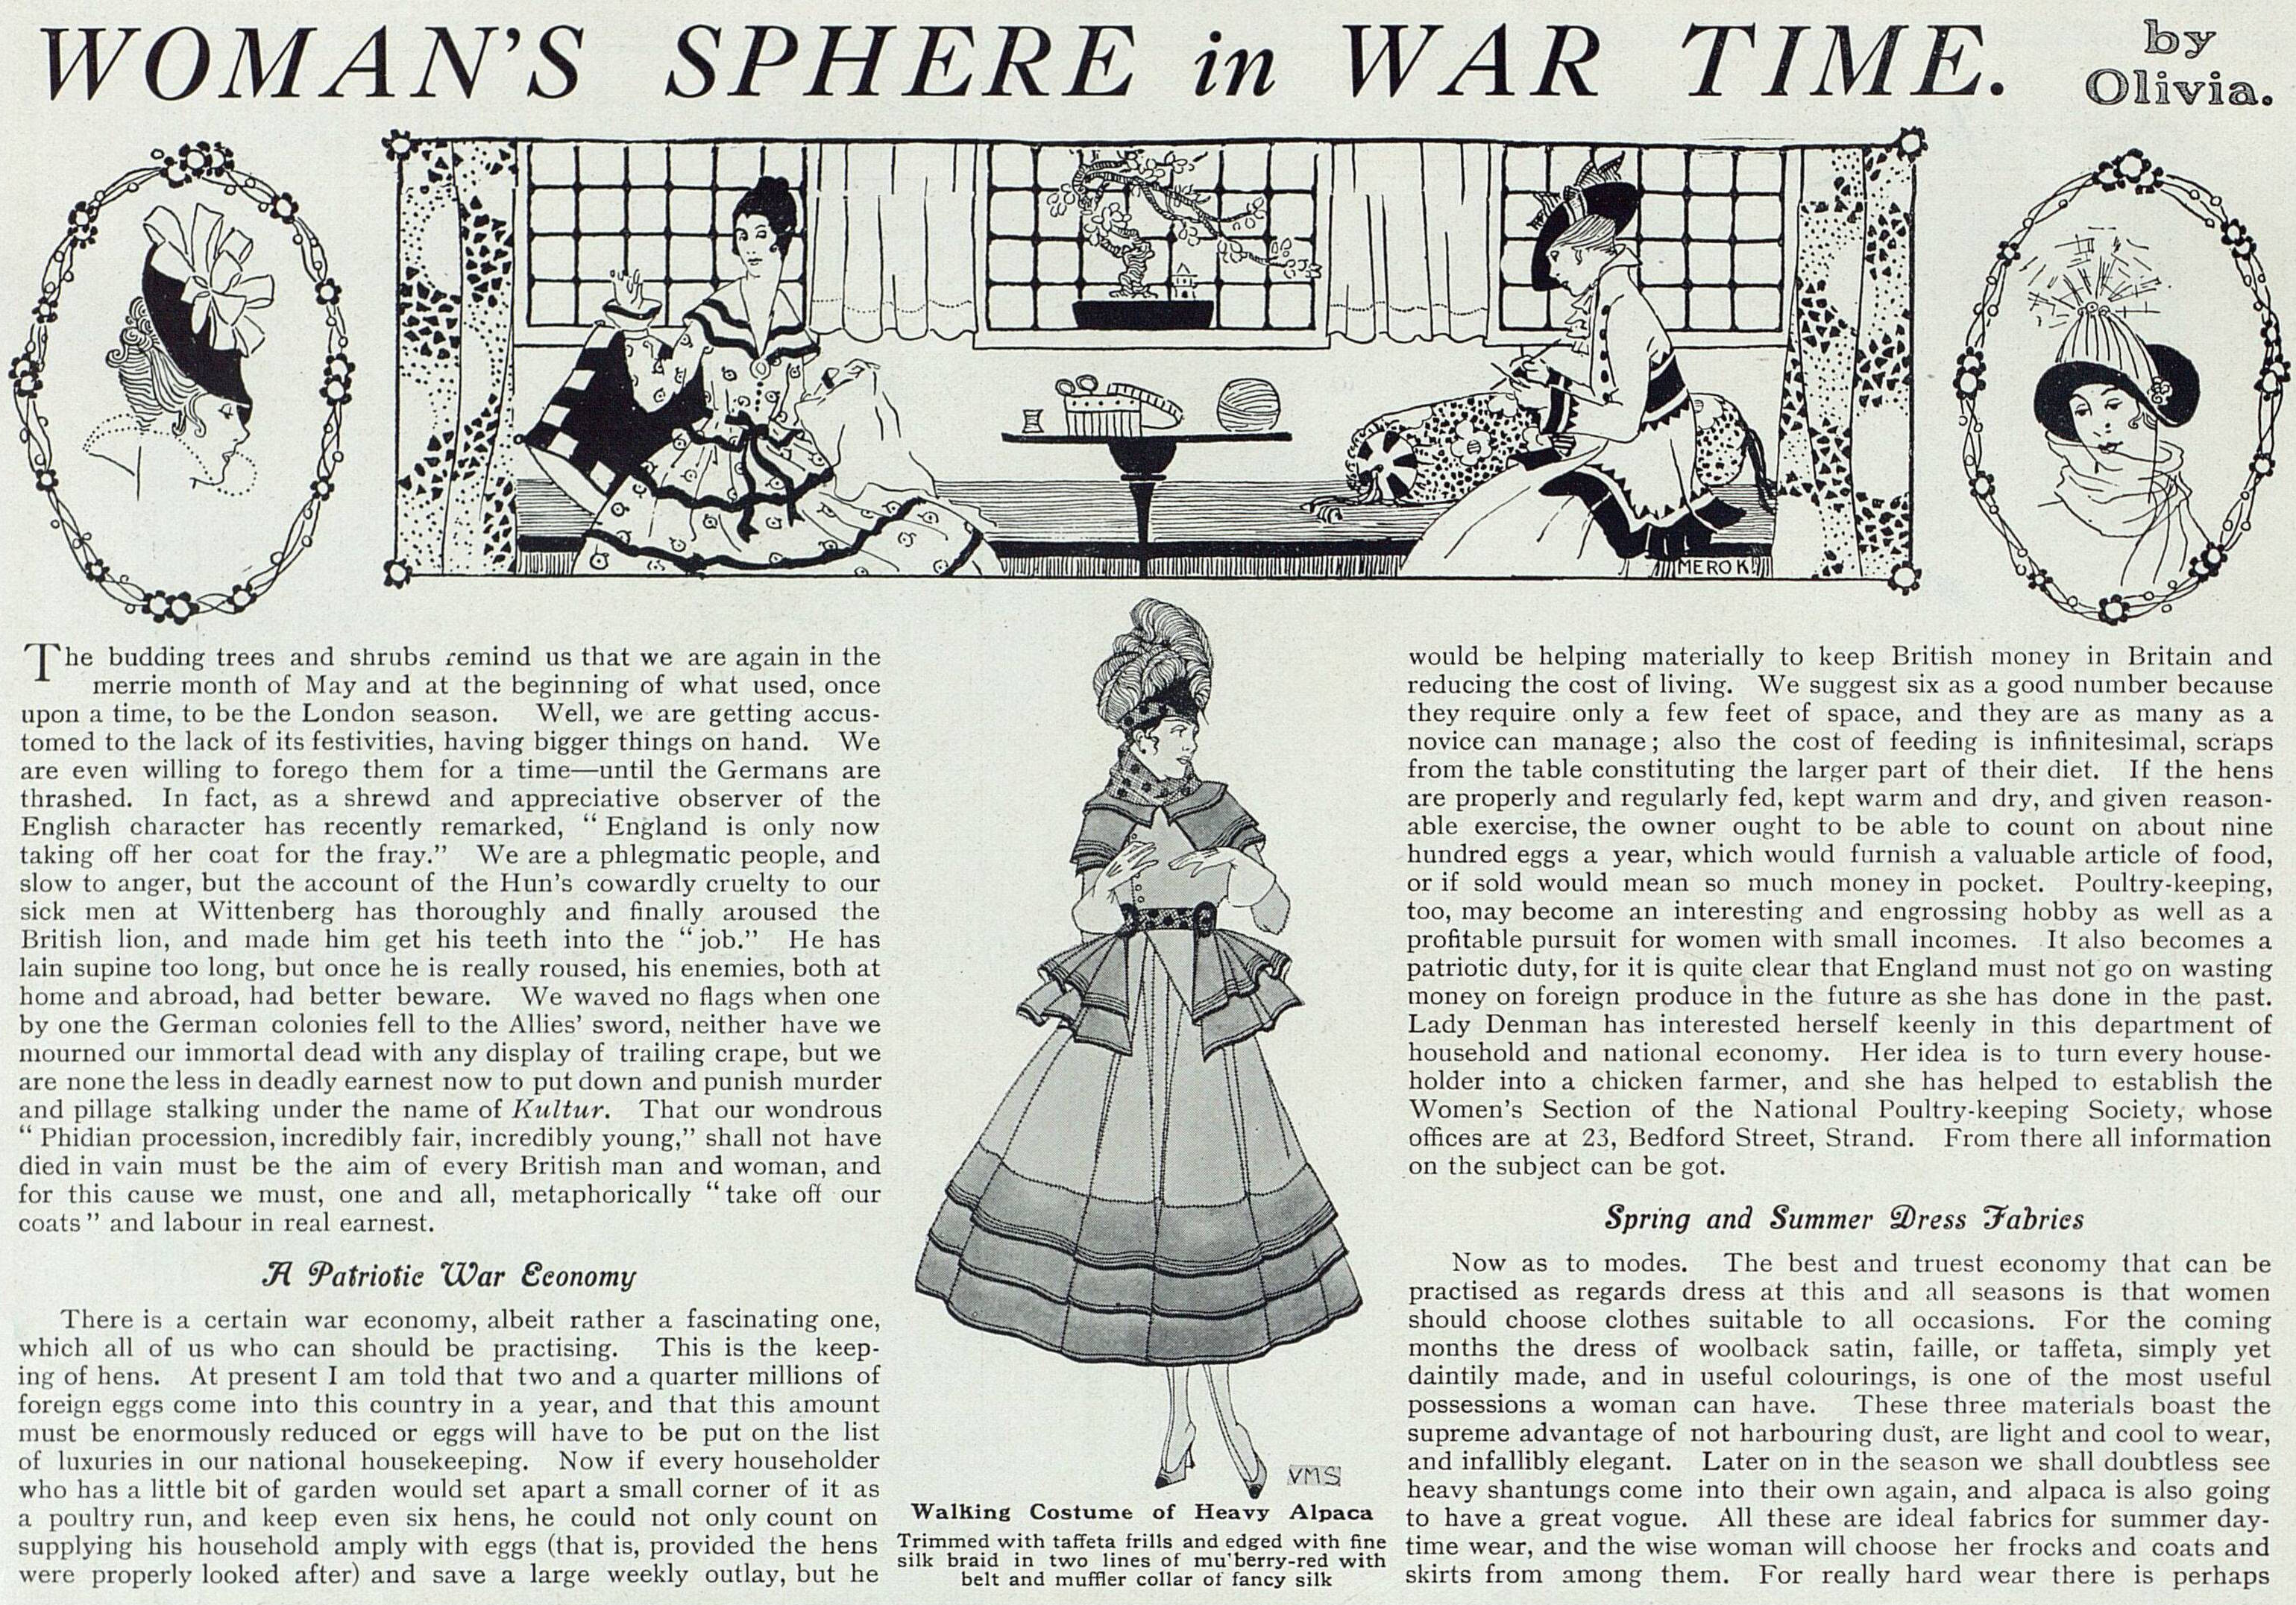 WomansSphereInWarTime_6May1916